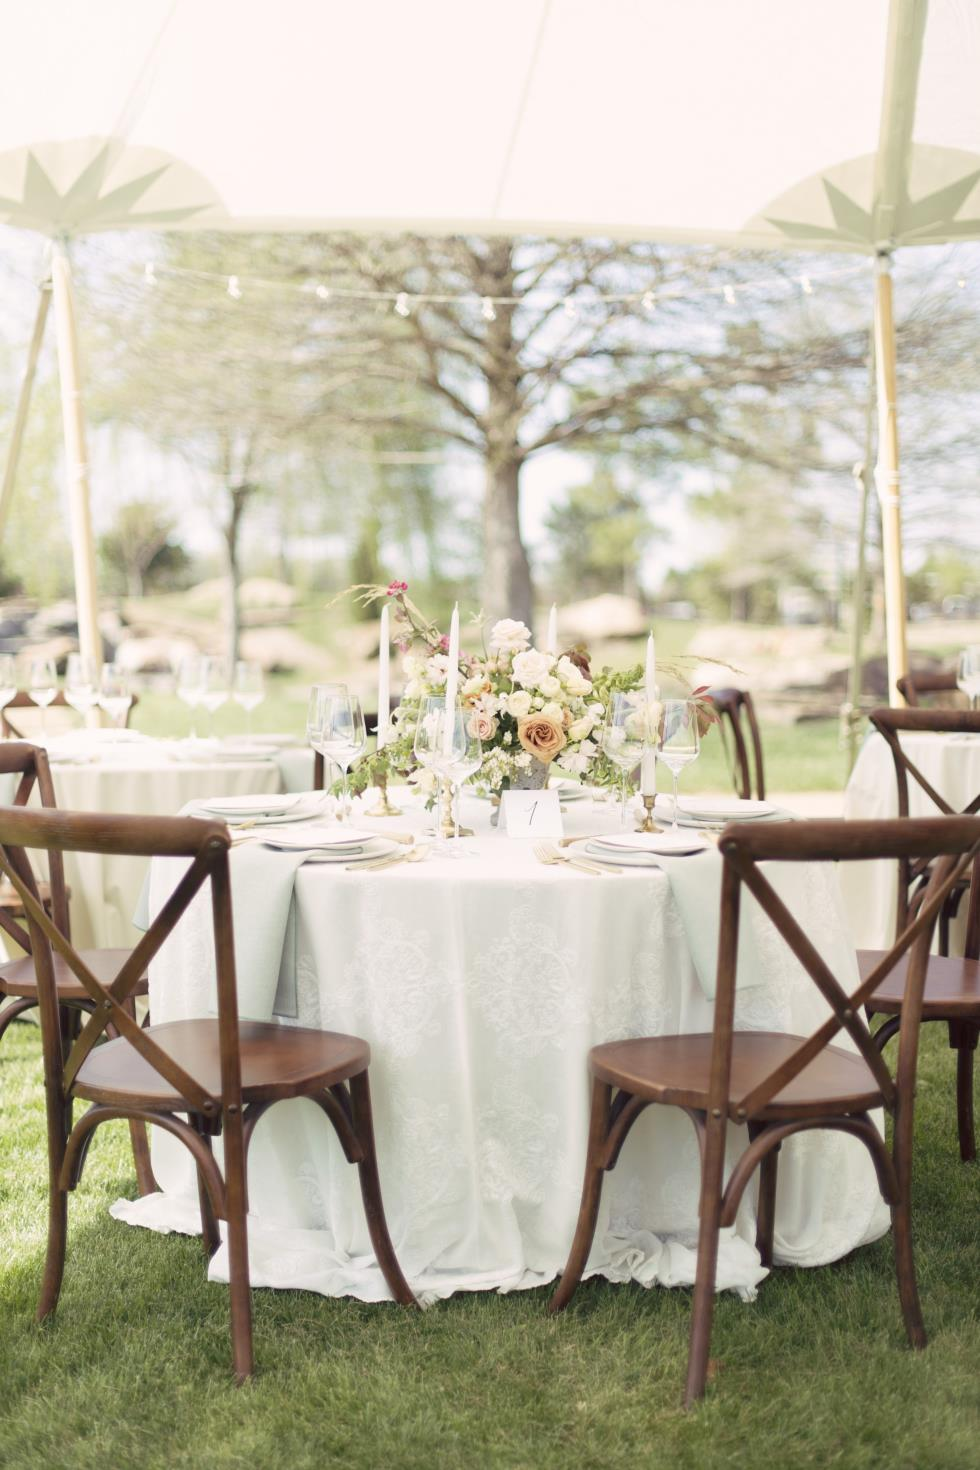 Tented Weddings & Celebrations